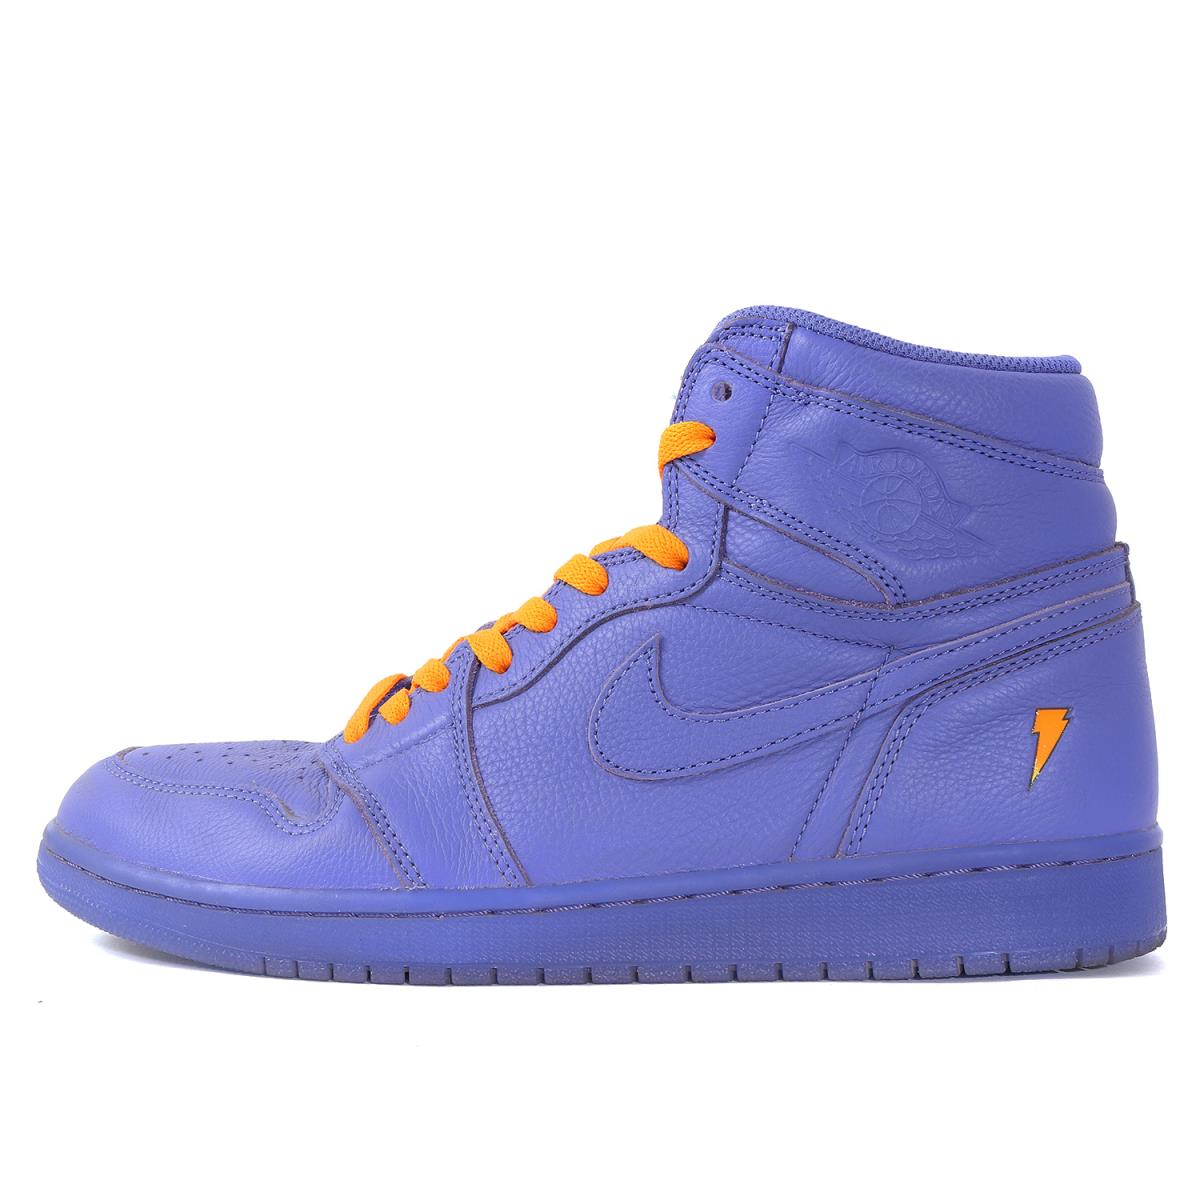 low priced a6b84 567c5 NIKE (Nike) AIR JORDAN 1 RETRO HIGH OG G8RD GATORADE GRAPE (AJ5997-555)  rush violet US10(28cm)